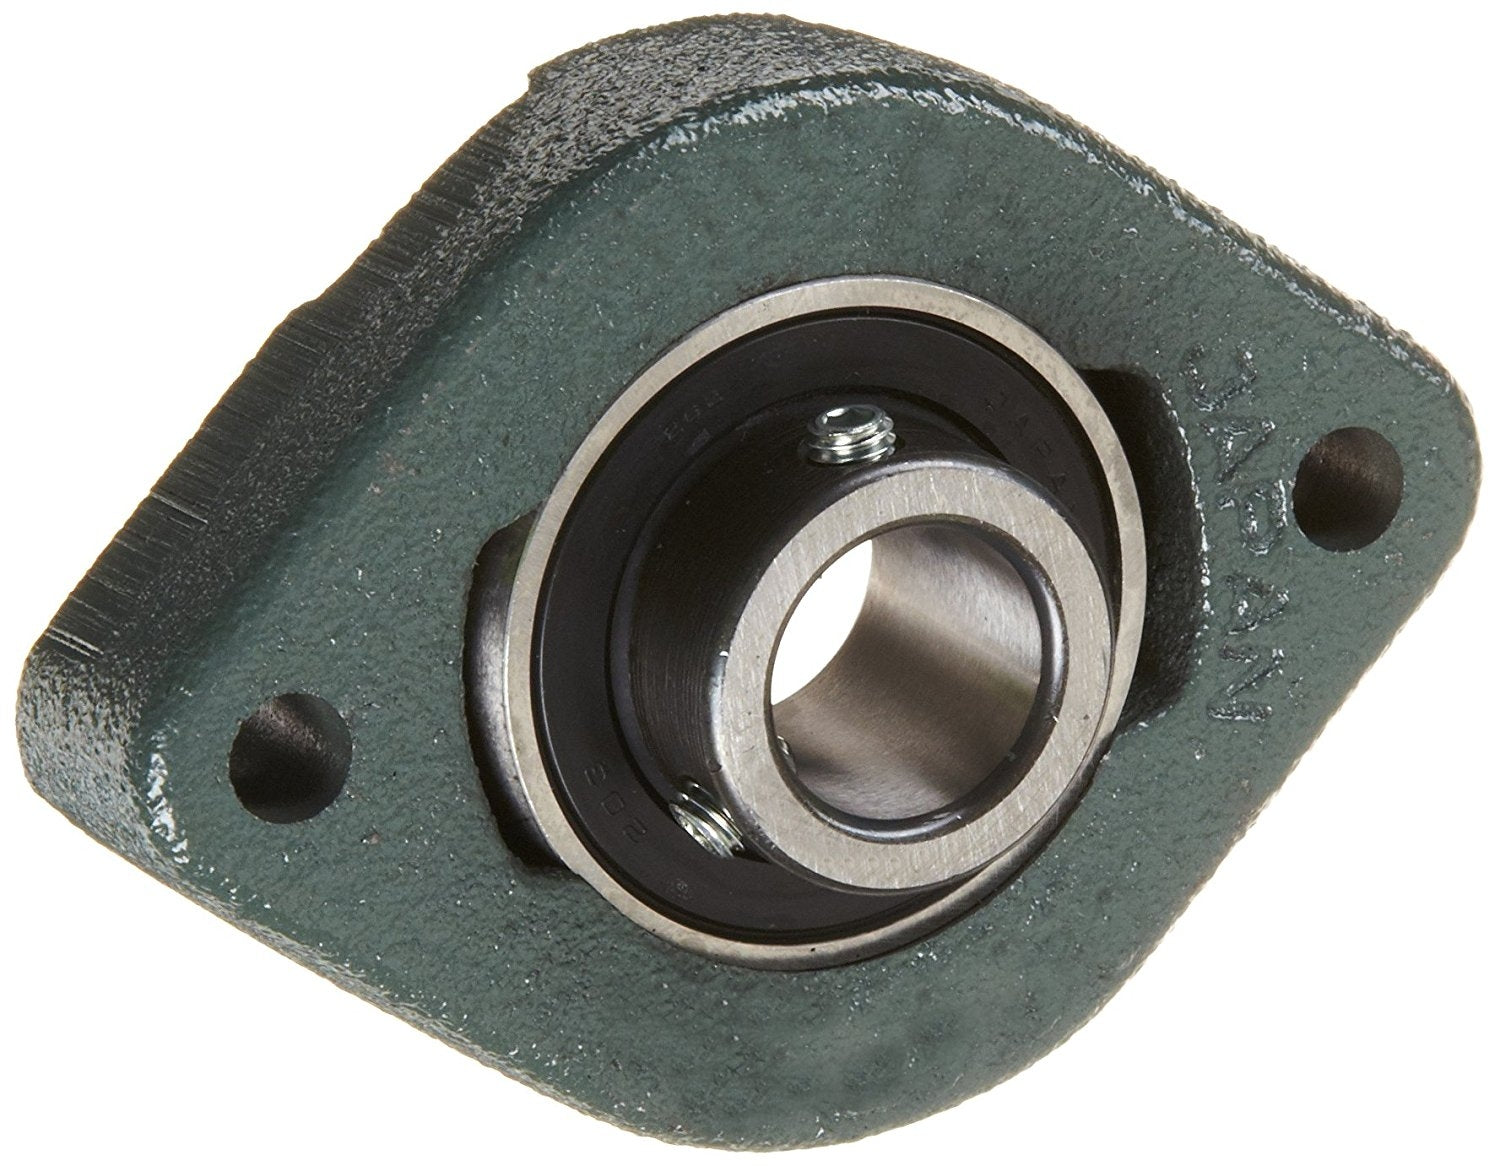 "NTN ARFLU-1.3/8 Light Duty Flange Bearing, 2 Bolts, Setscrew Lock, Non-Relubricatable, Contact Seals, Cast Iron, Inch, 1-3/8"" Bore, 5-1/8"" Bolt Hole Spacing Width, 6-5/32"" Height"